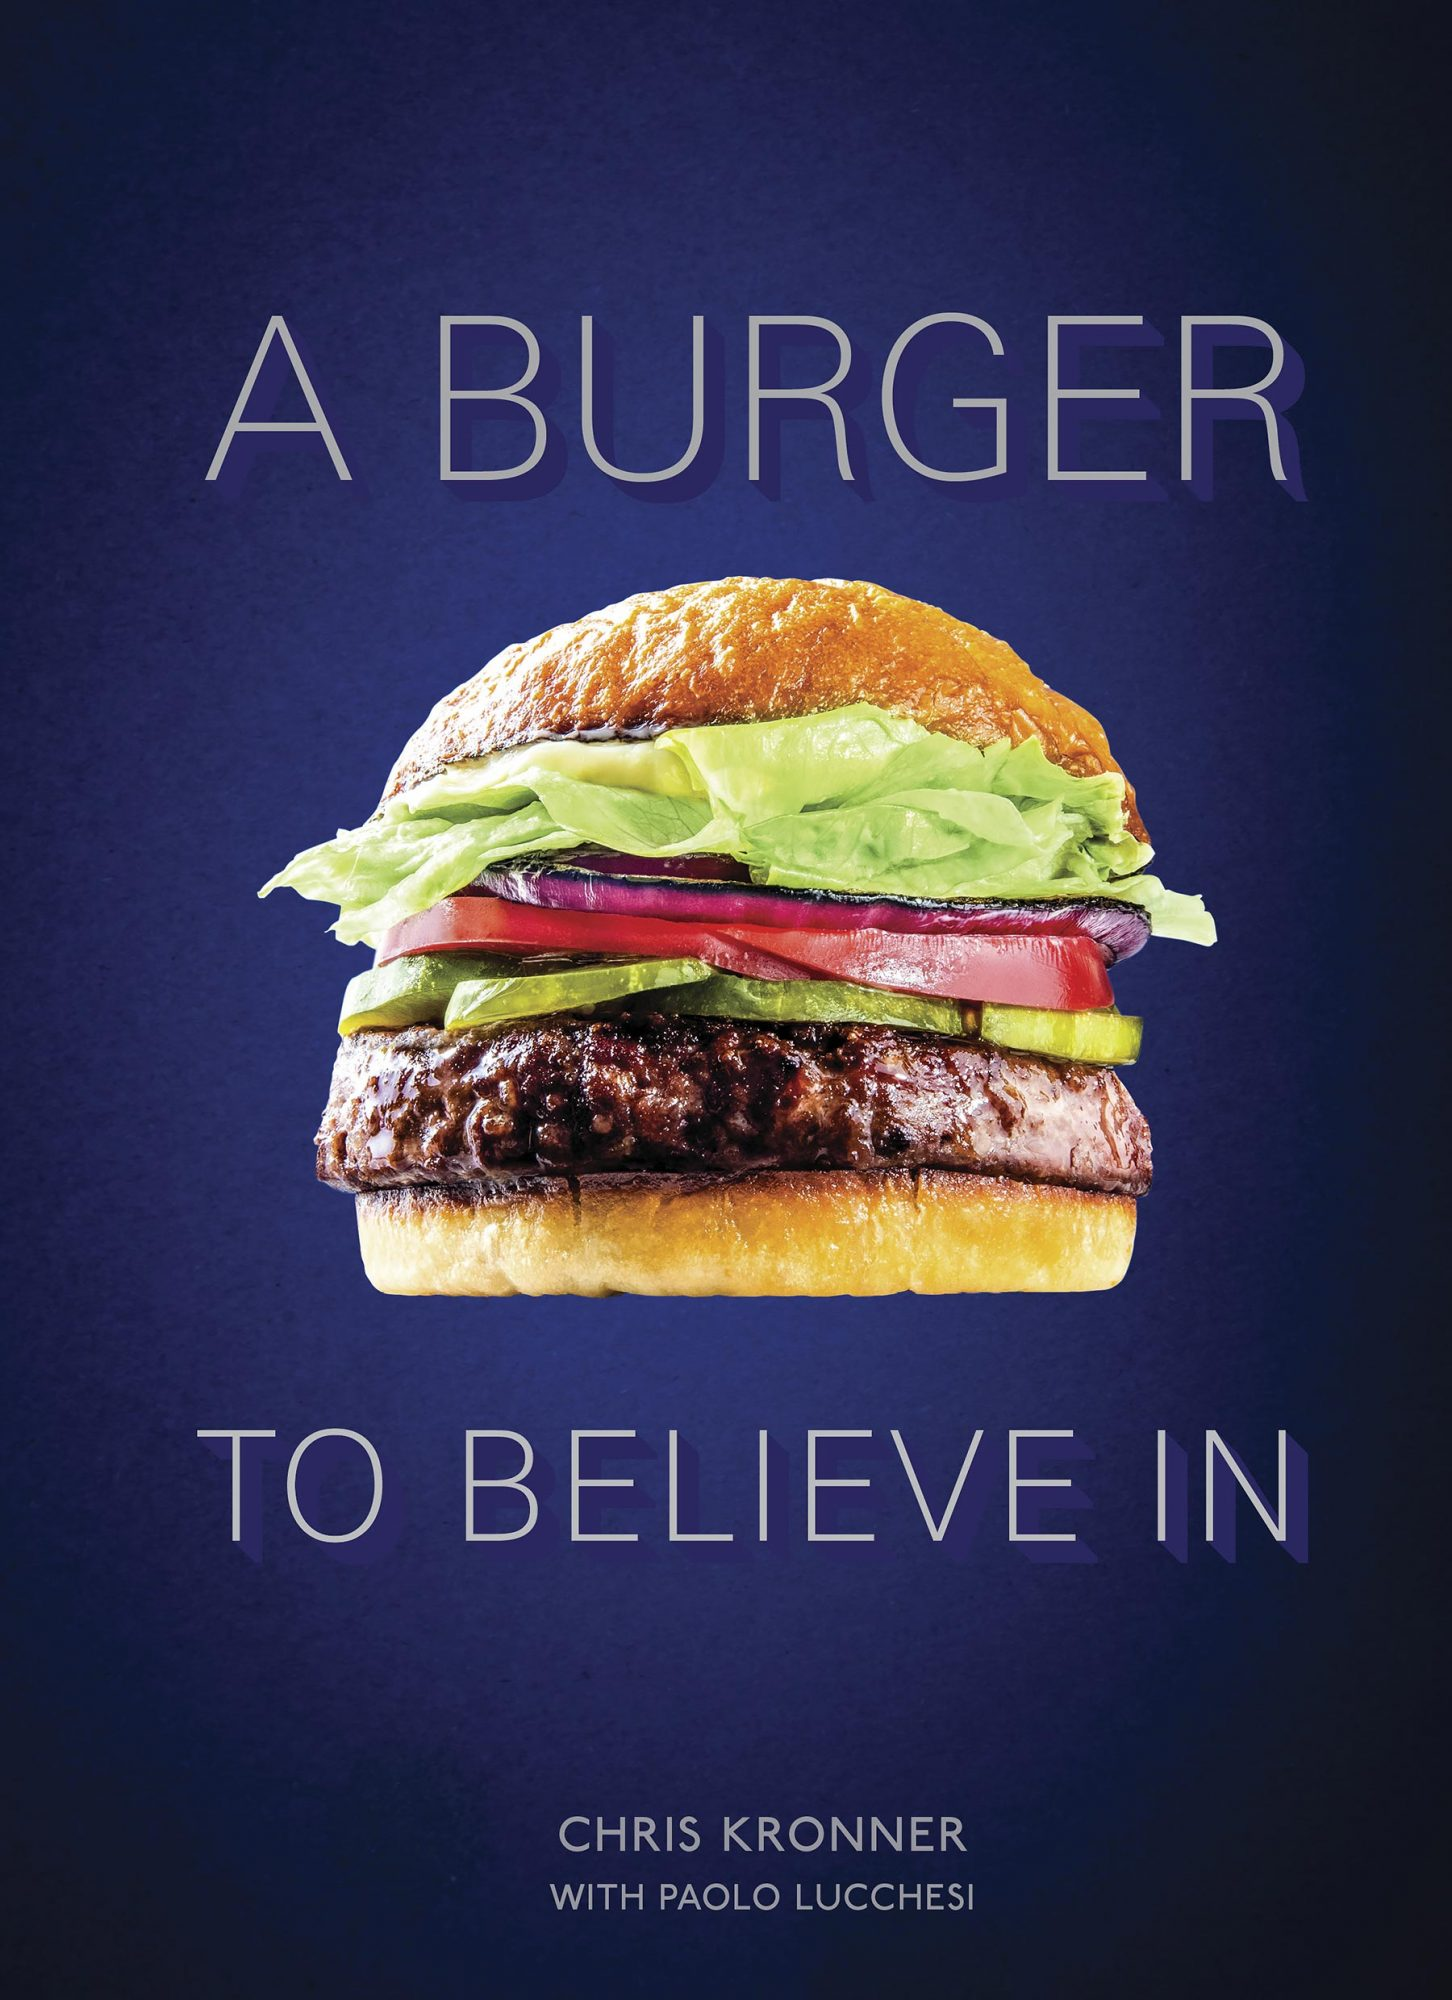 A Burger to Believe In, by Chris Kronner